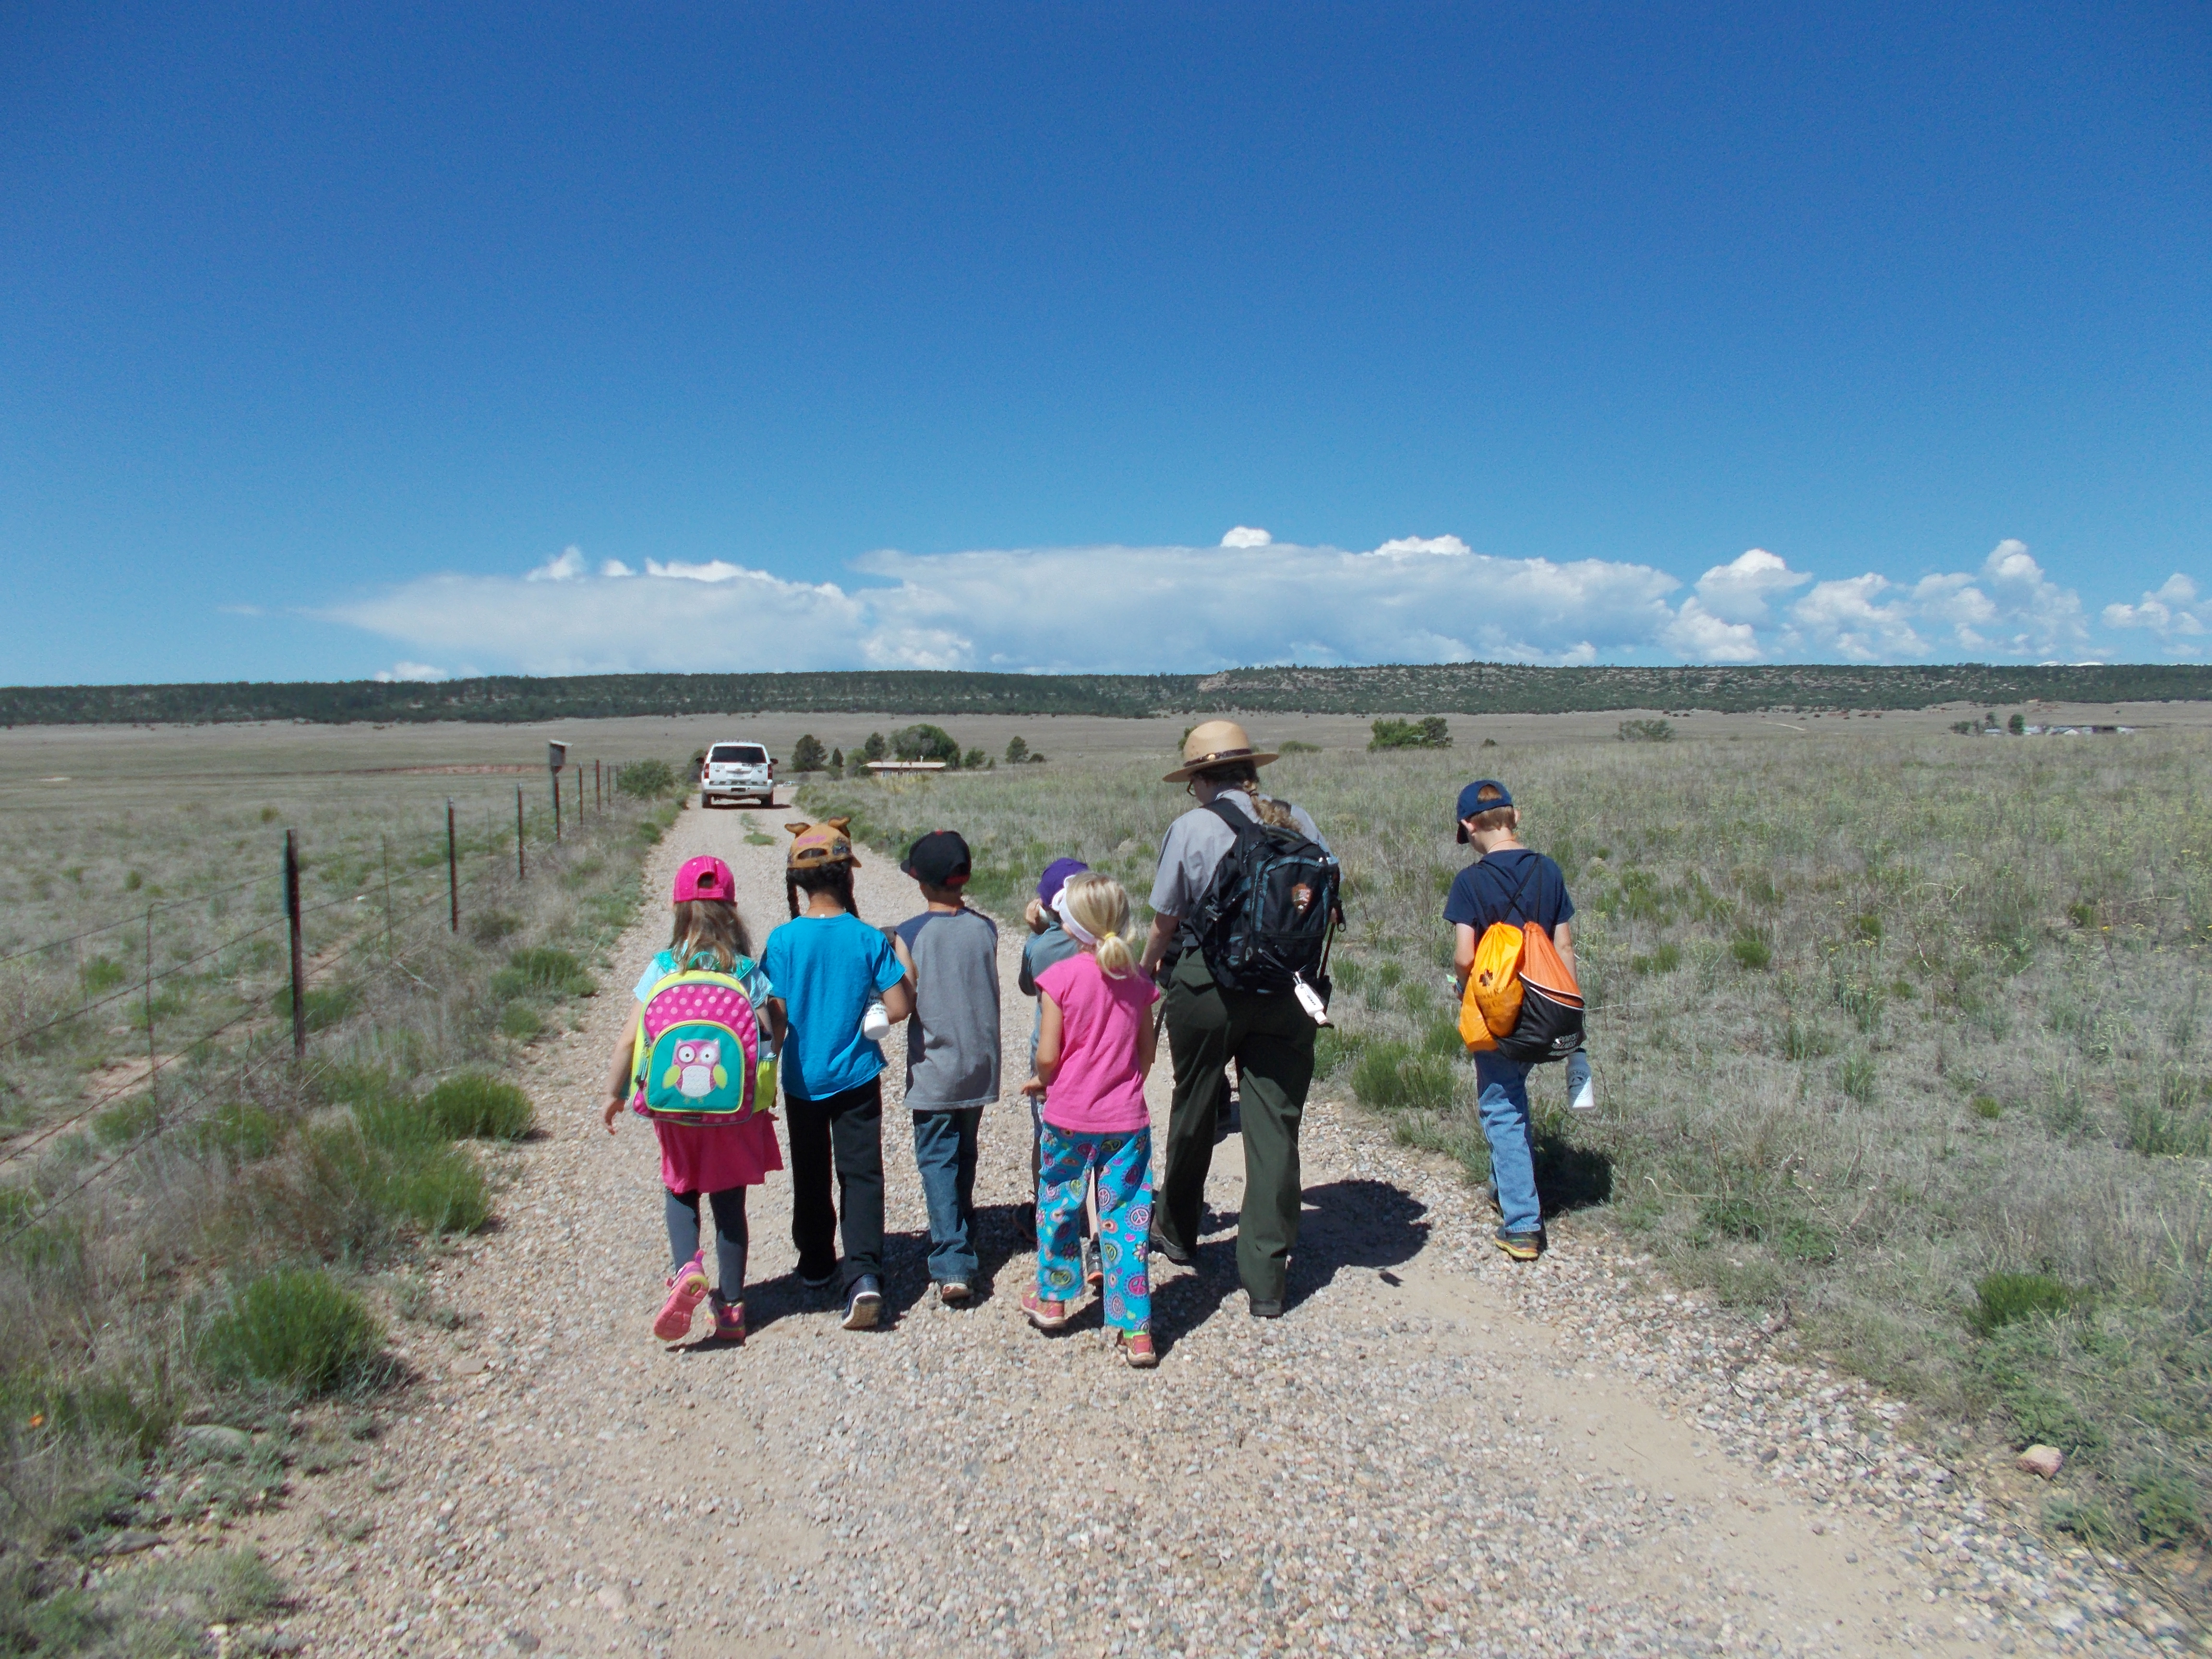 Ranger walking with students on trail